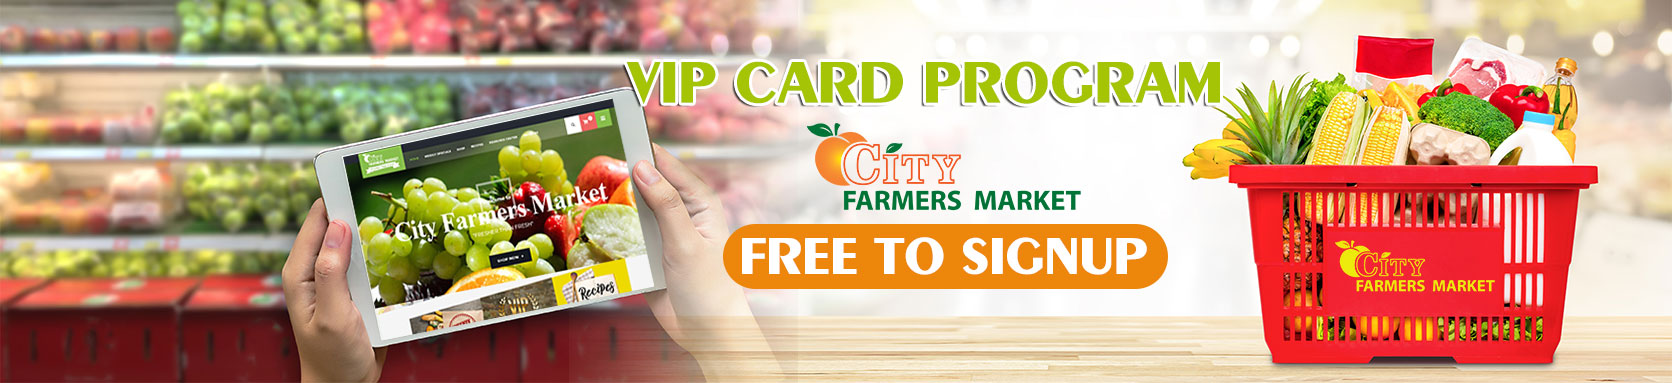 VIP CARD PROGRAM City Farmers Market Atlanta Georgia VIP Card Program v1